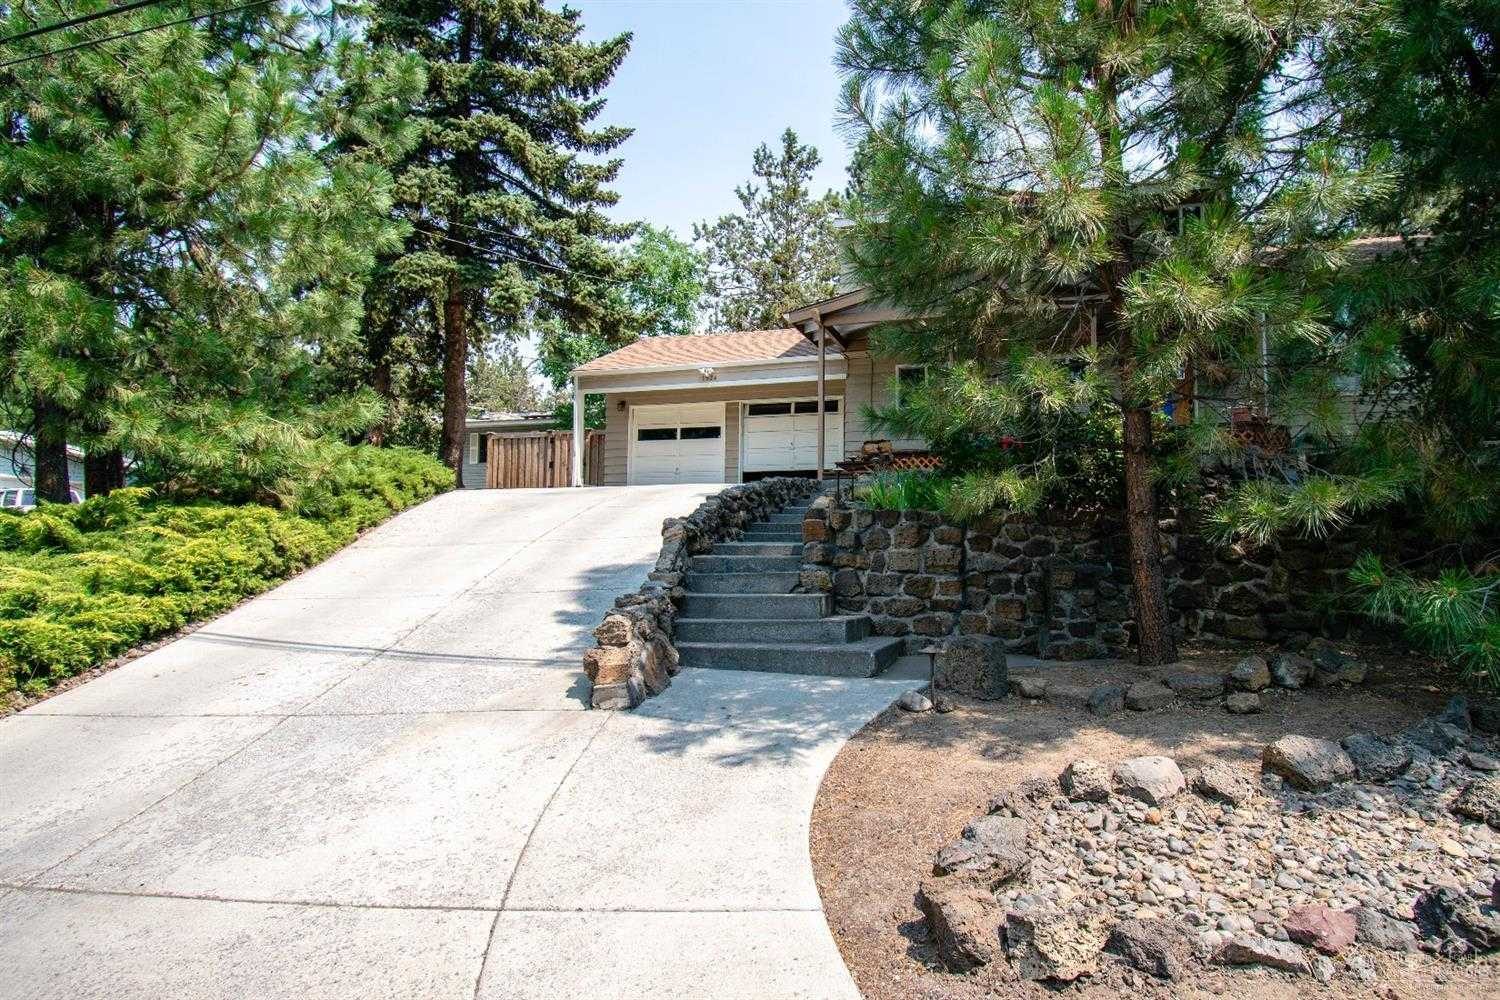 $390,000 - 4Br/2Ba -  for Sale in Bend